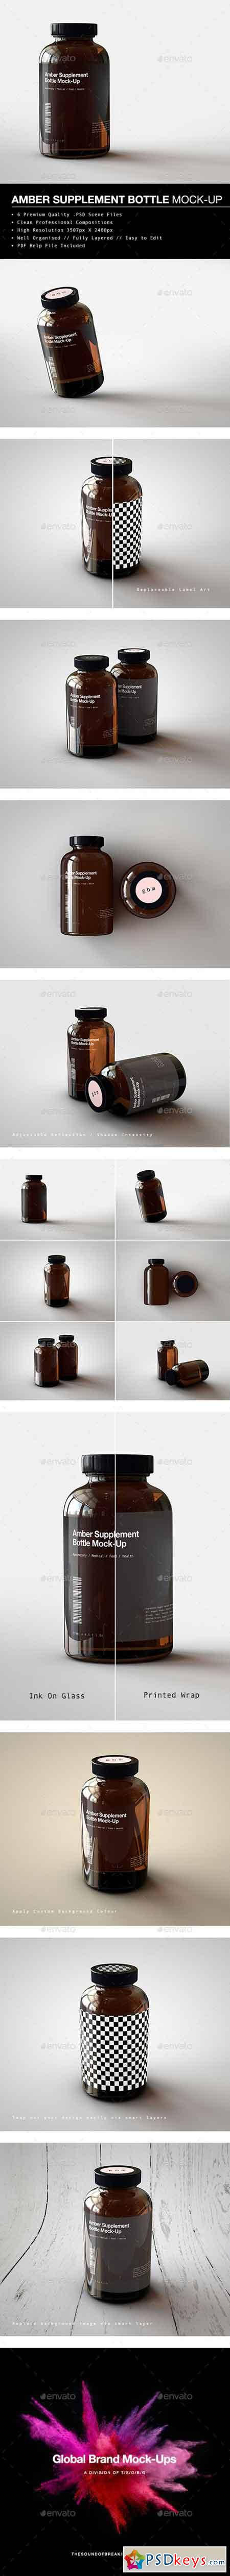 Amber Supplement Bottle Vitamins Bottle Mock-Up 20280290